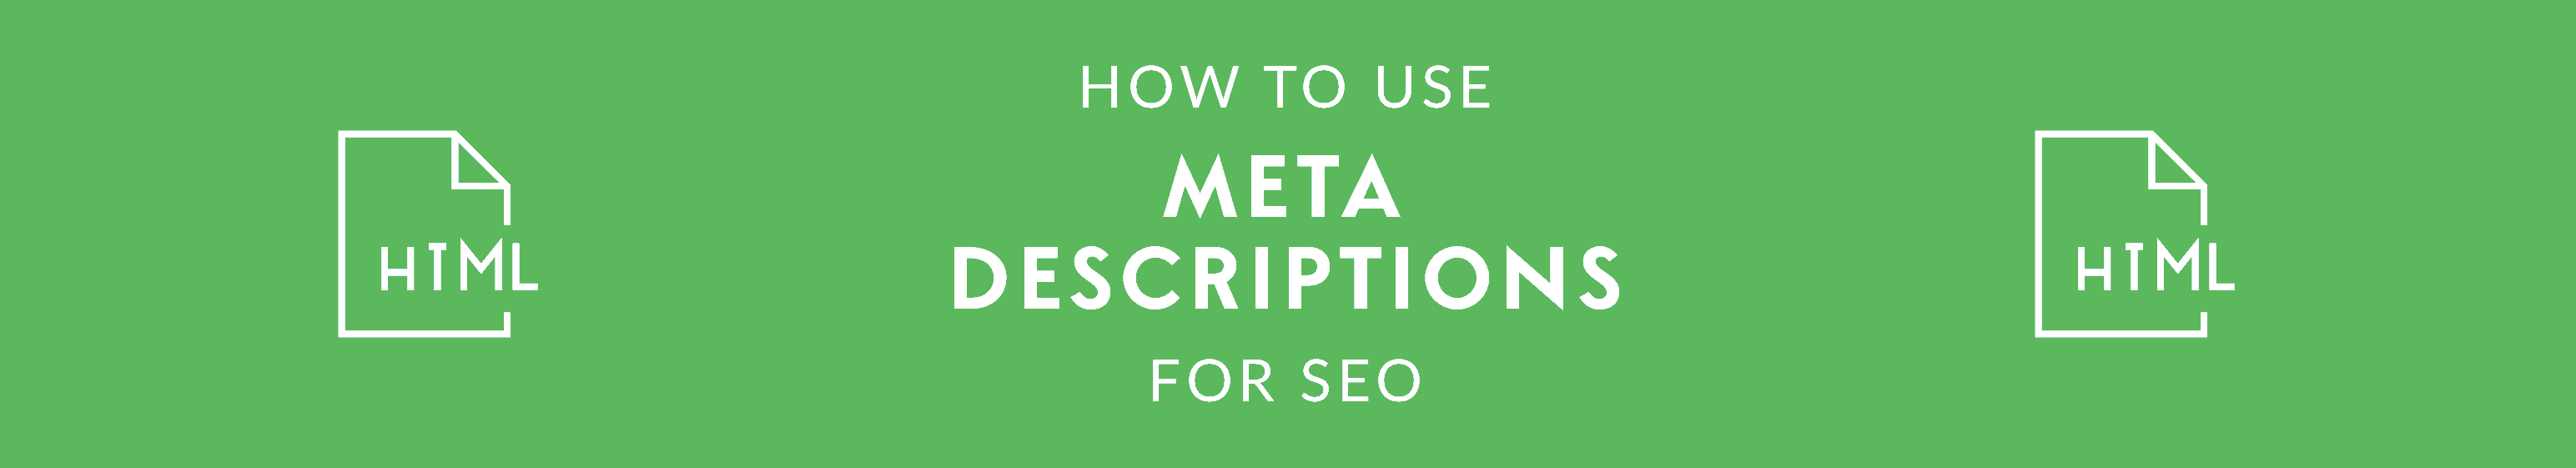 How to Use Meta Descriptions for SEO